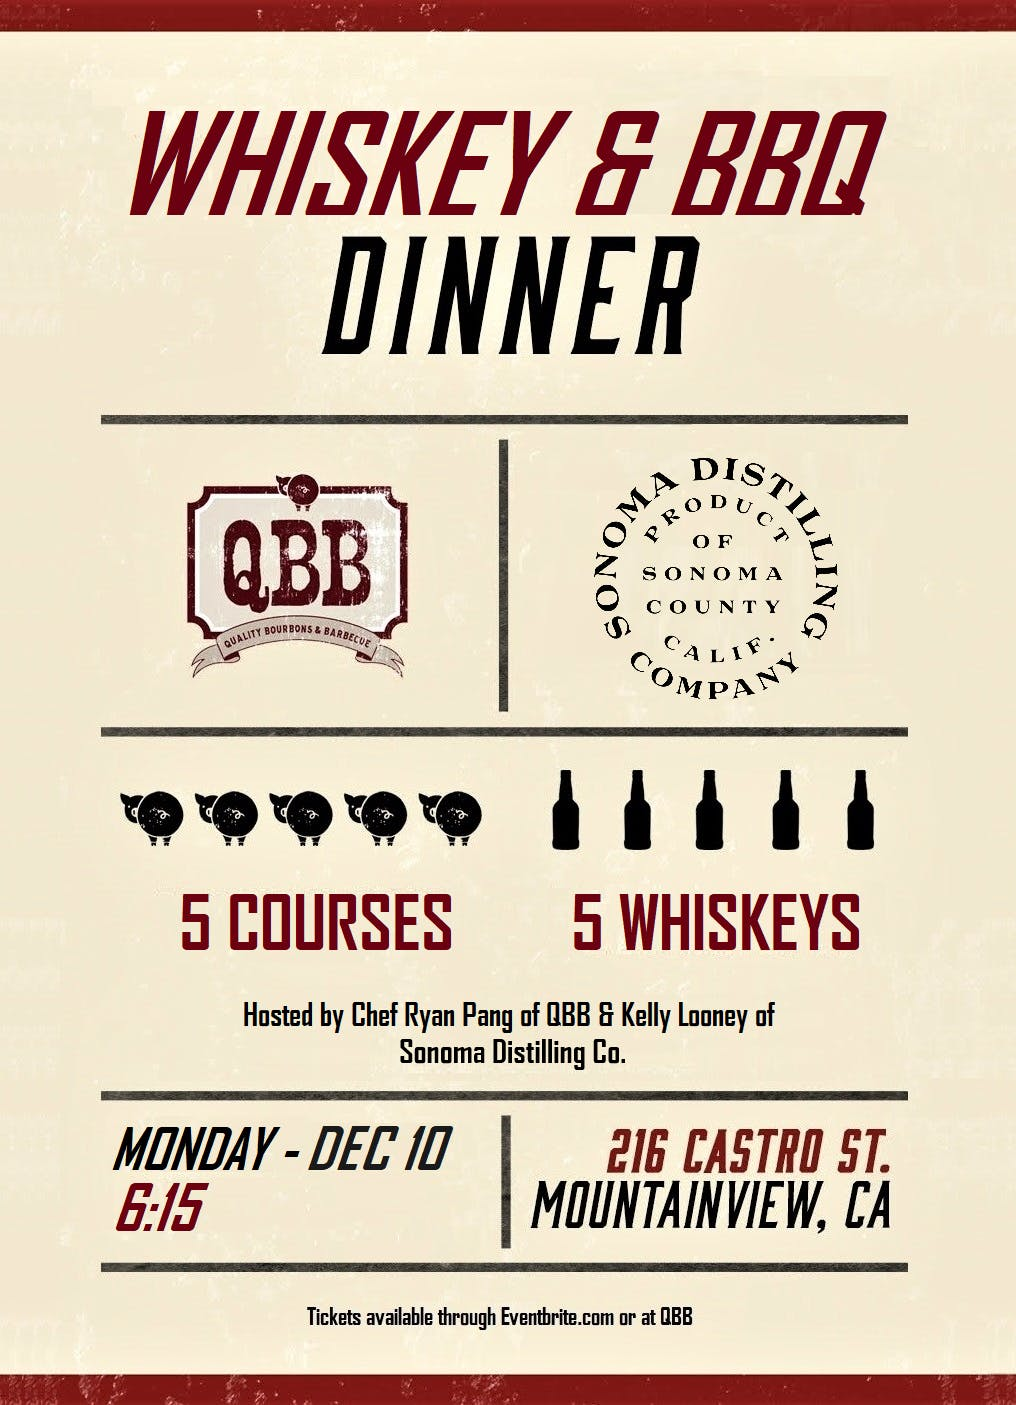 BBQ Dinner with Sonoma Distilling Co. @ QBB